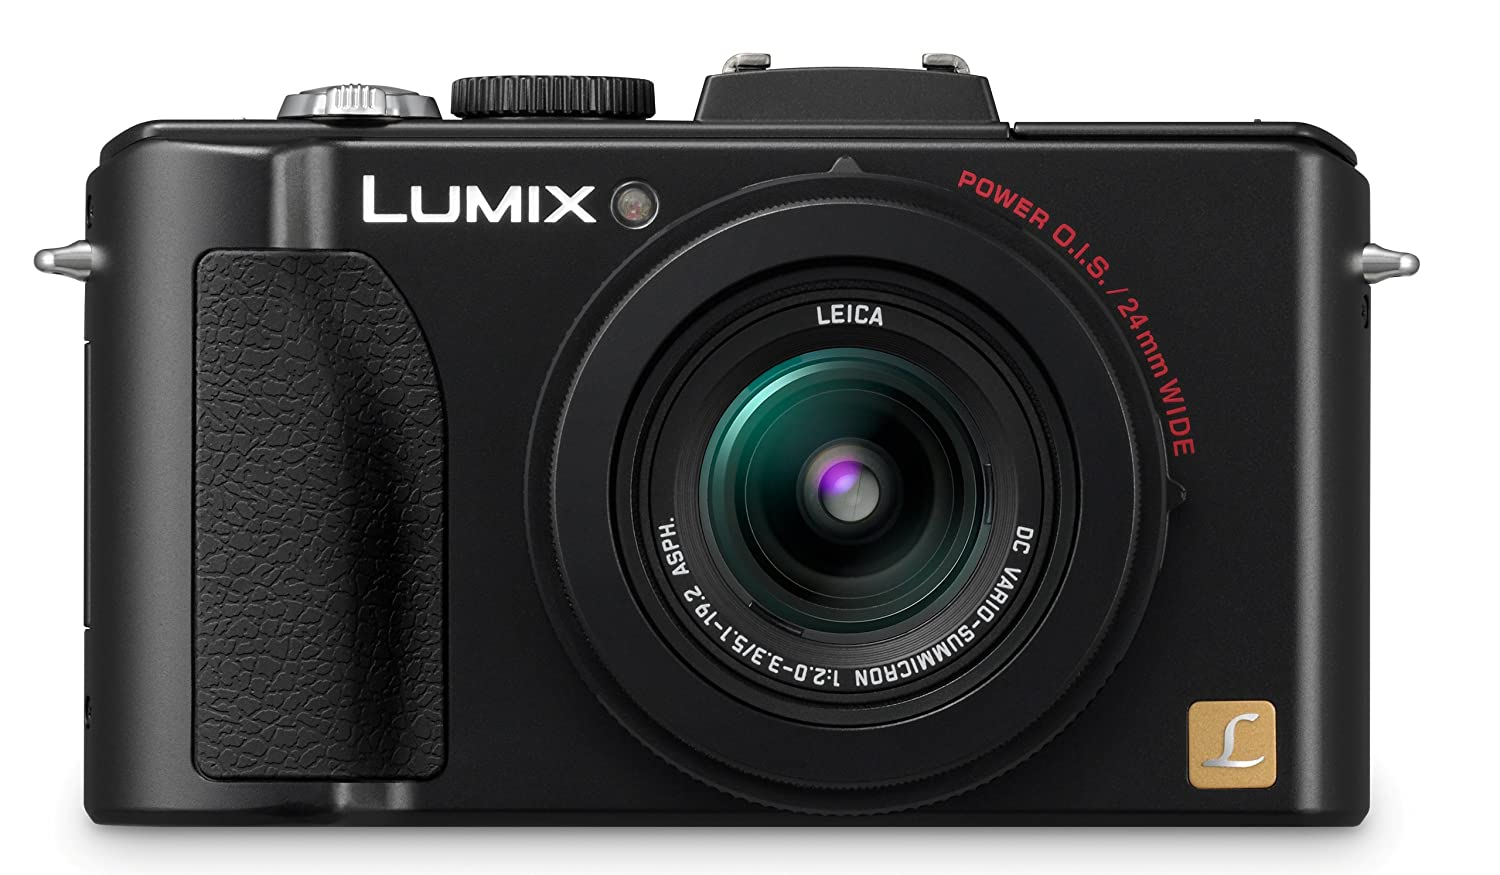 Panasonic Lumix DMC-LX5 10.1 MP Digital Camera with 3.8x Optical Image Stabilized Zoom and 3.0-Inch LCD – Black